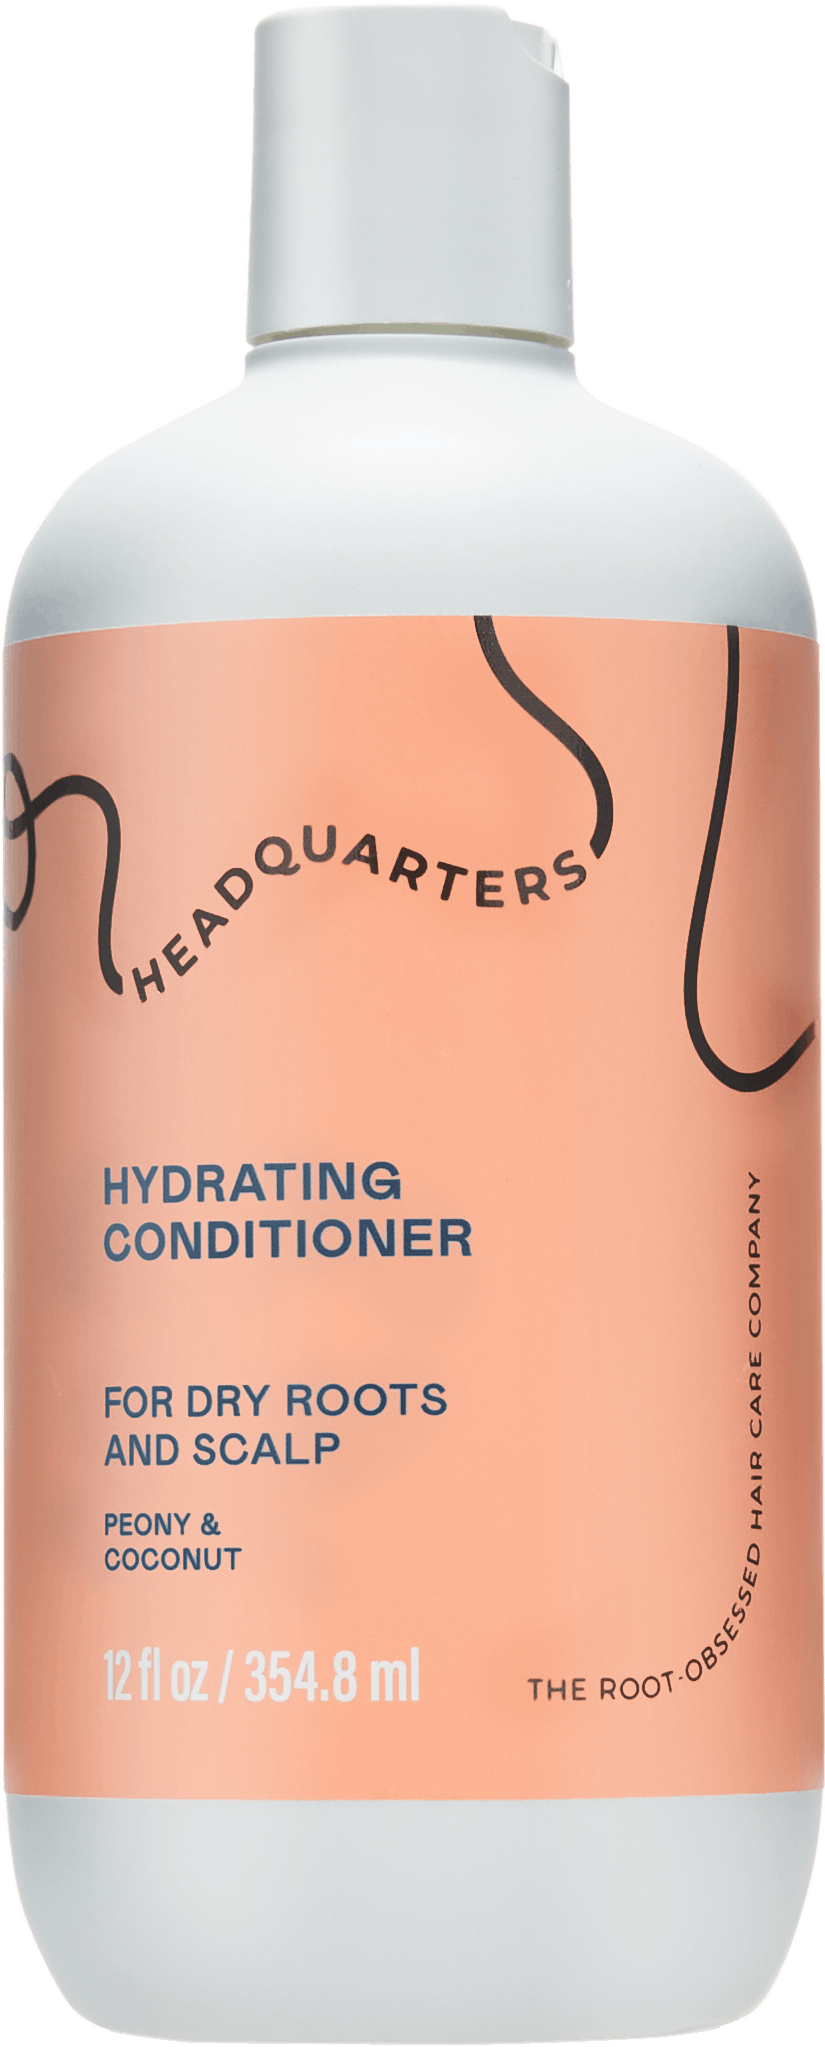 Headquarters Hydrating Conditioner Dry scalp care bottle